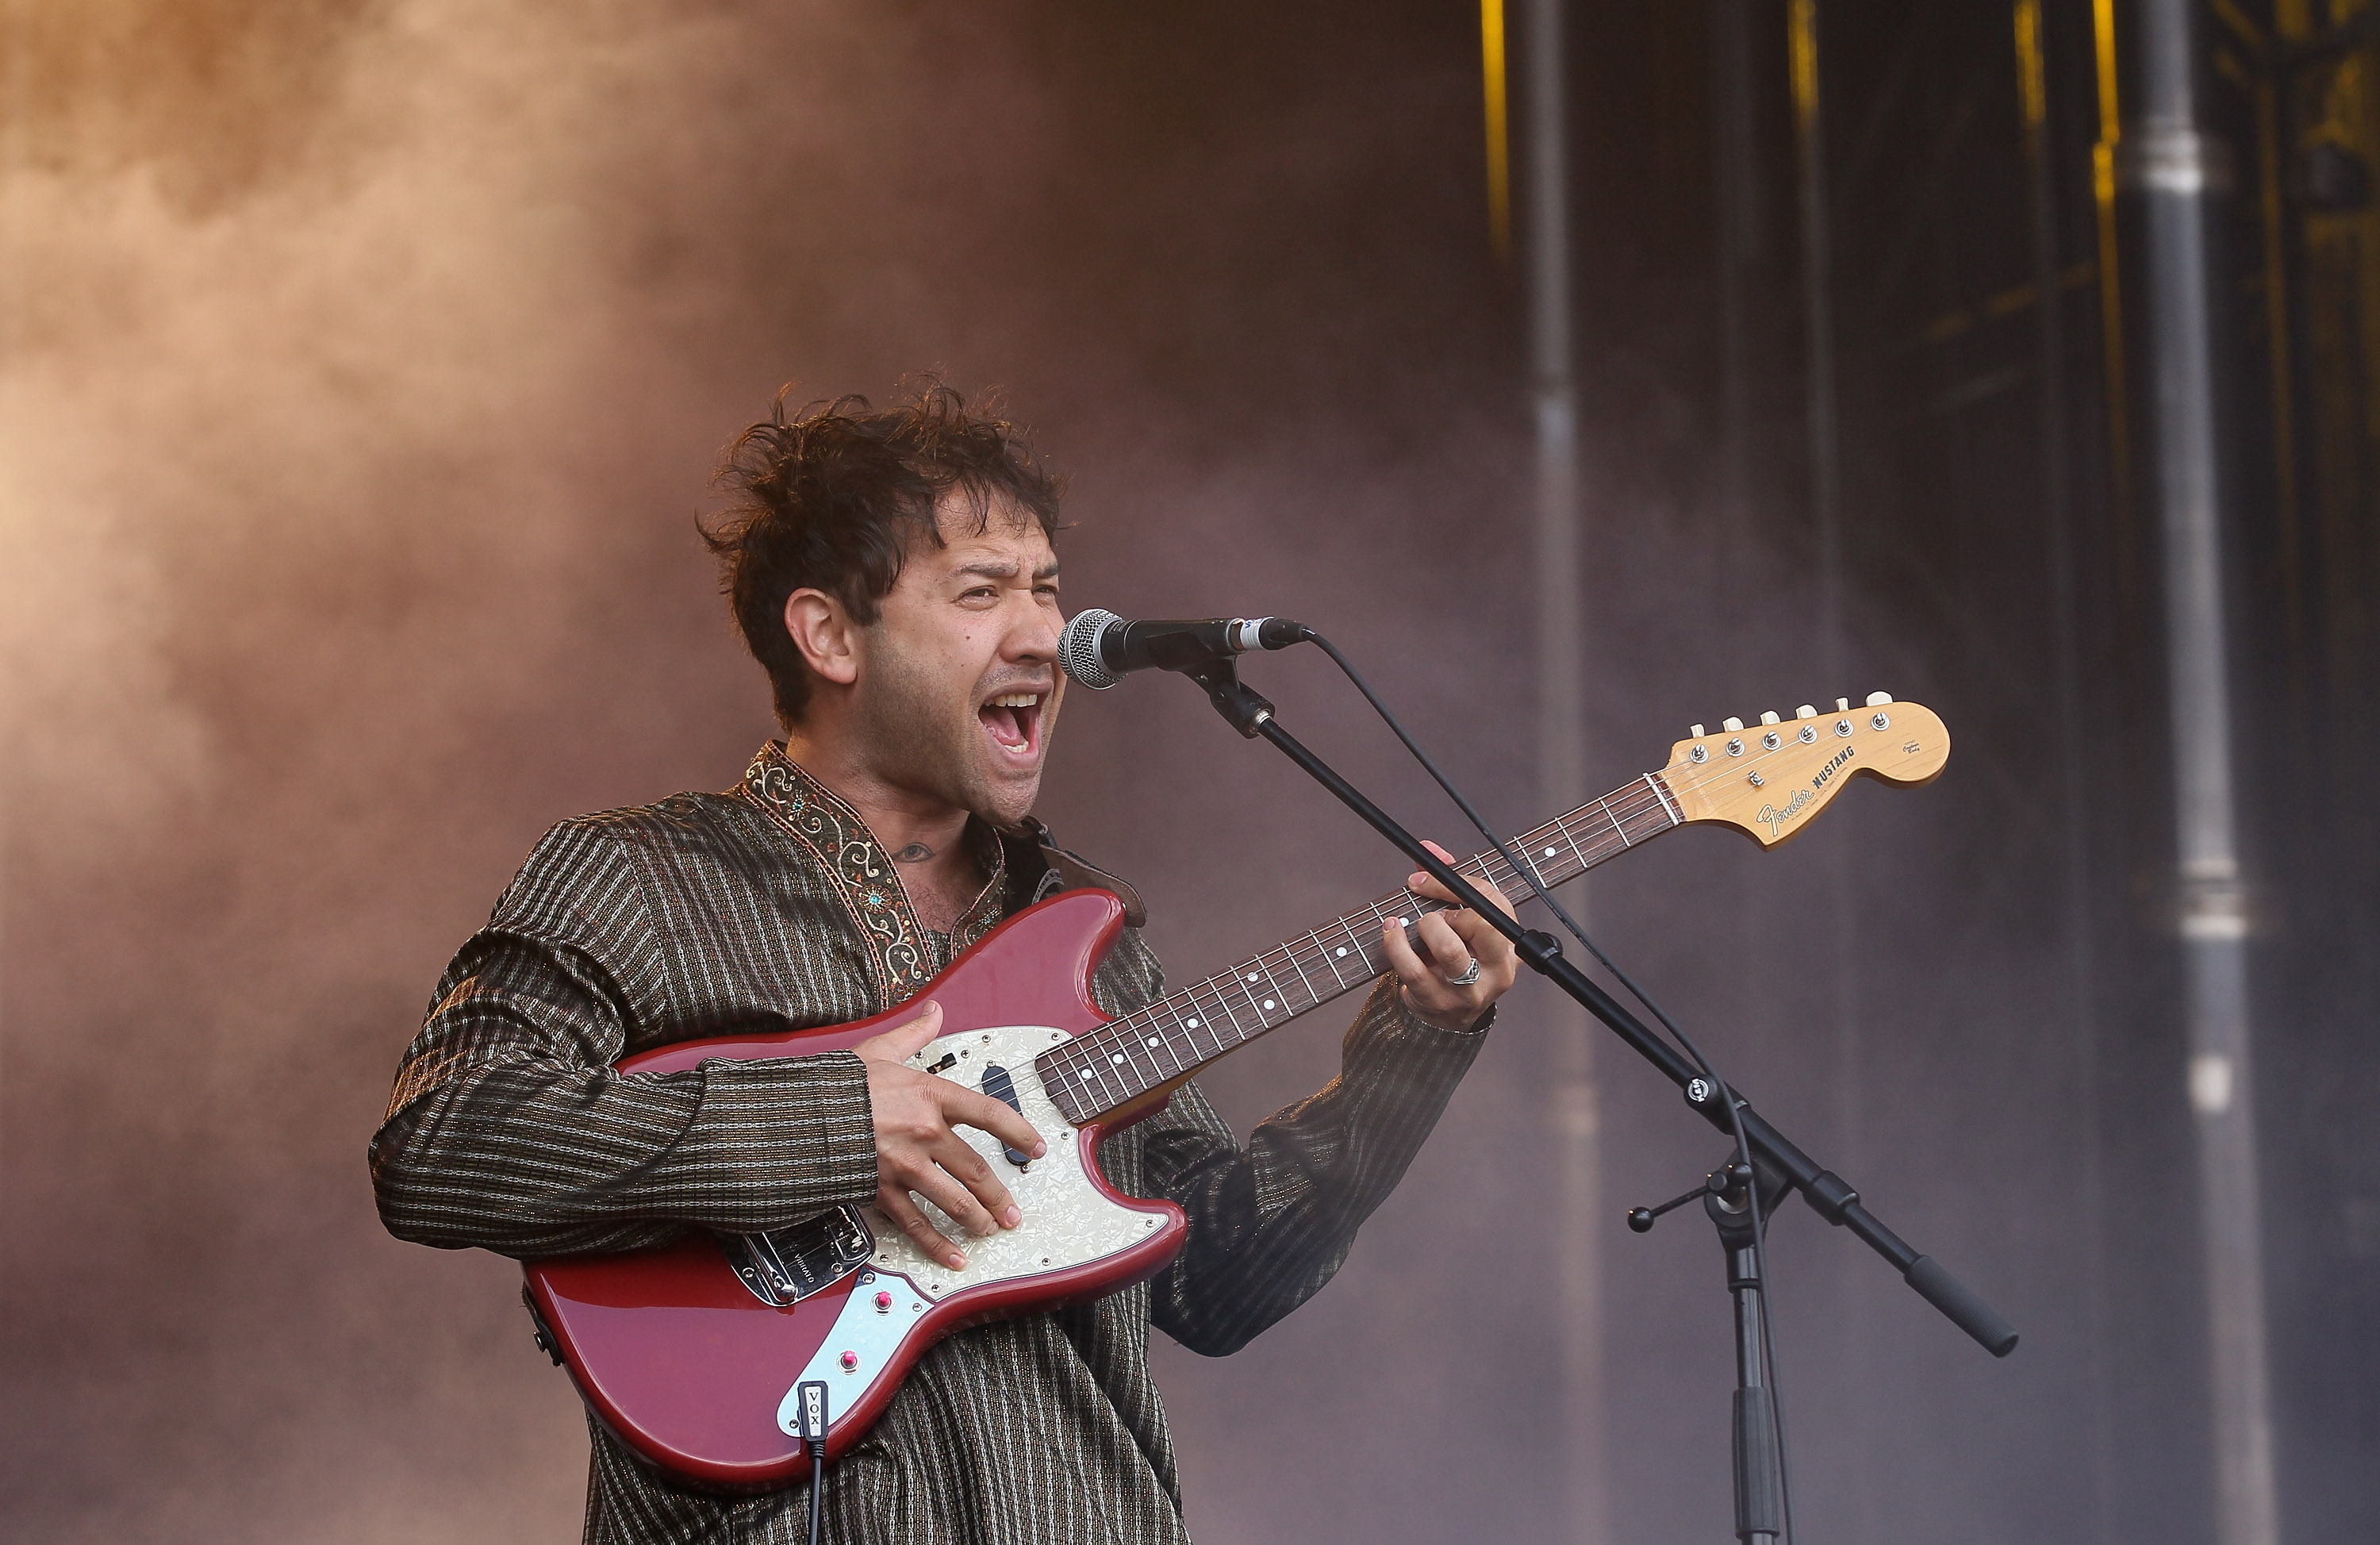 AUCKLAND, NEW ZEALAND - JANUARY 20:  Ruban Nielson of Unknown Mortal Orchestra performs on stage during Big Day Out at Mt Sma